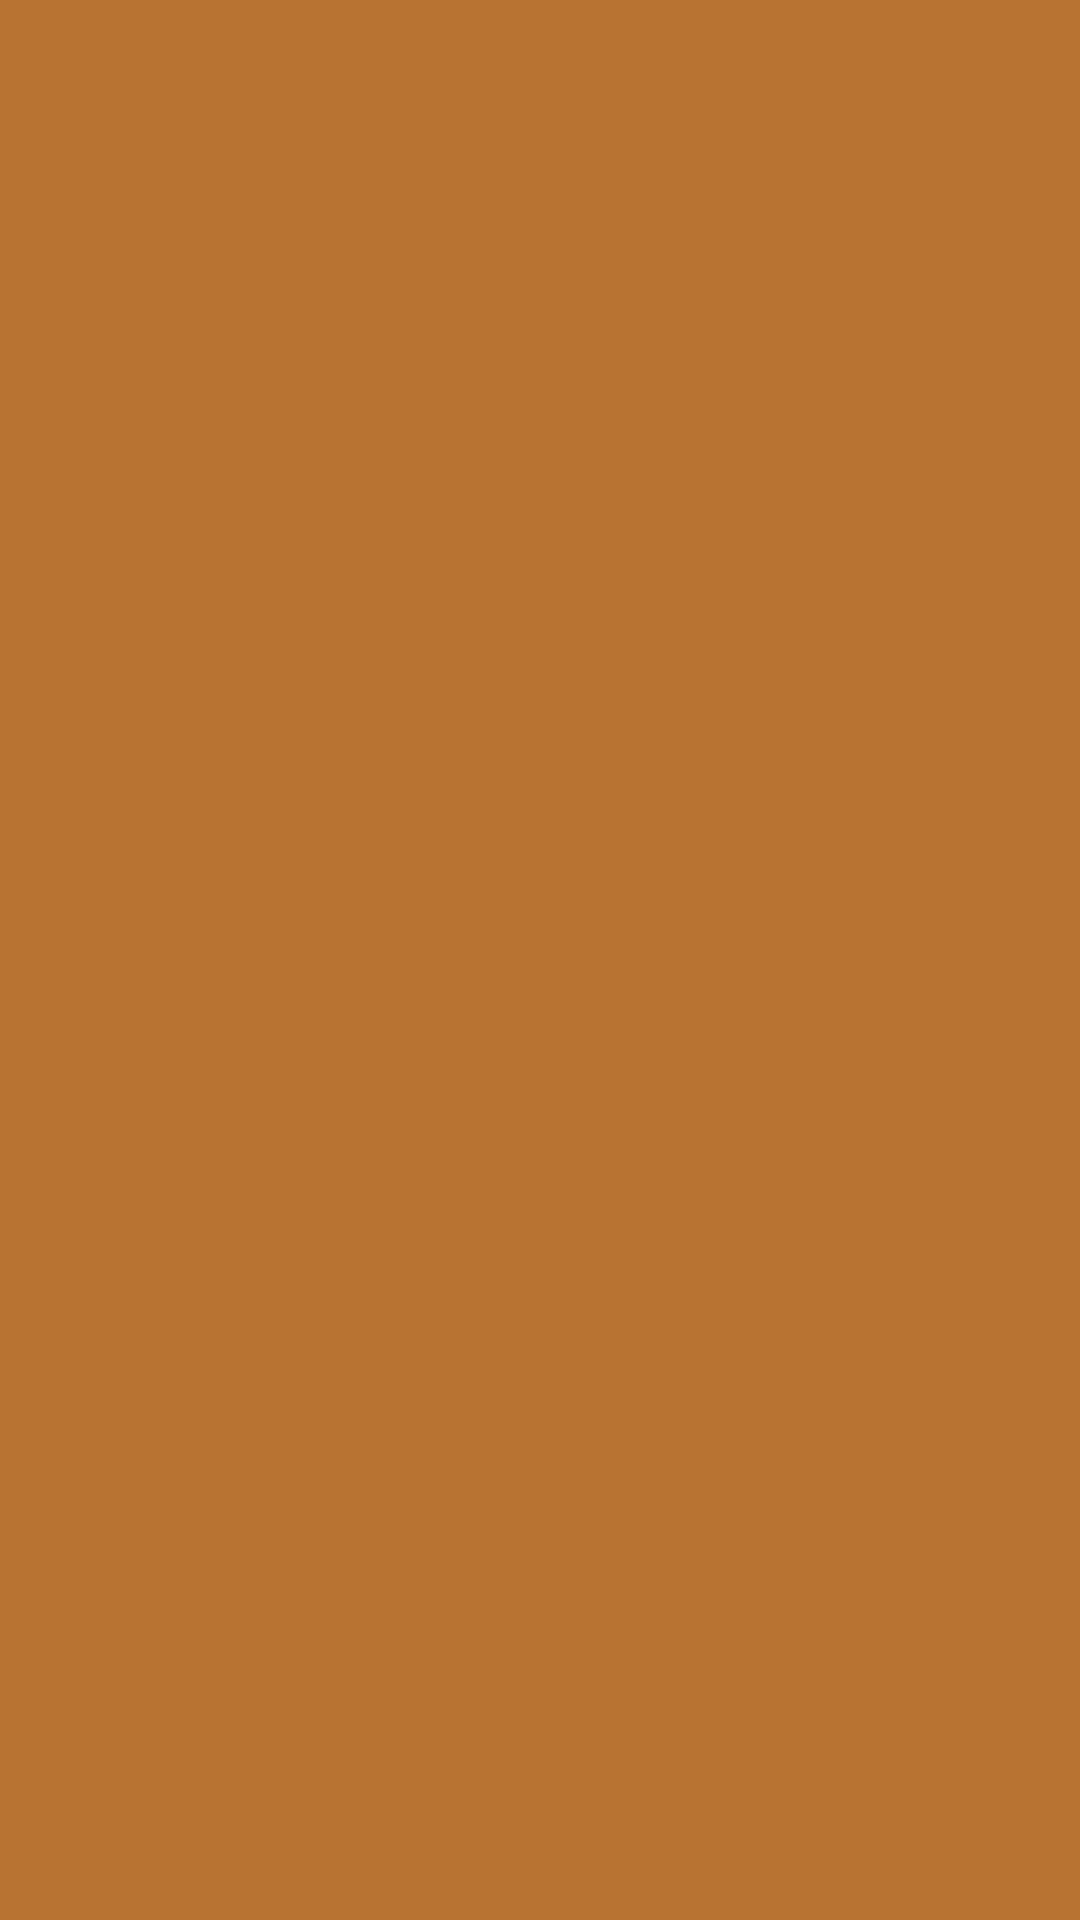 1080x1920 Copper Solid Color Background